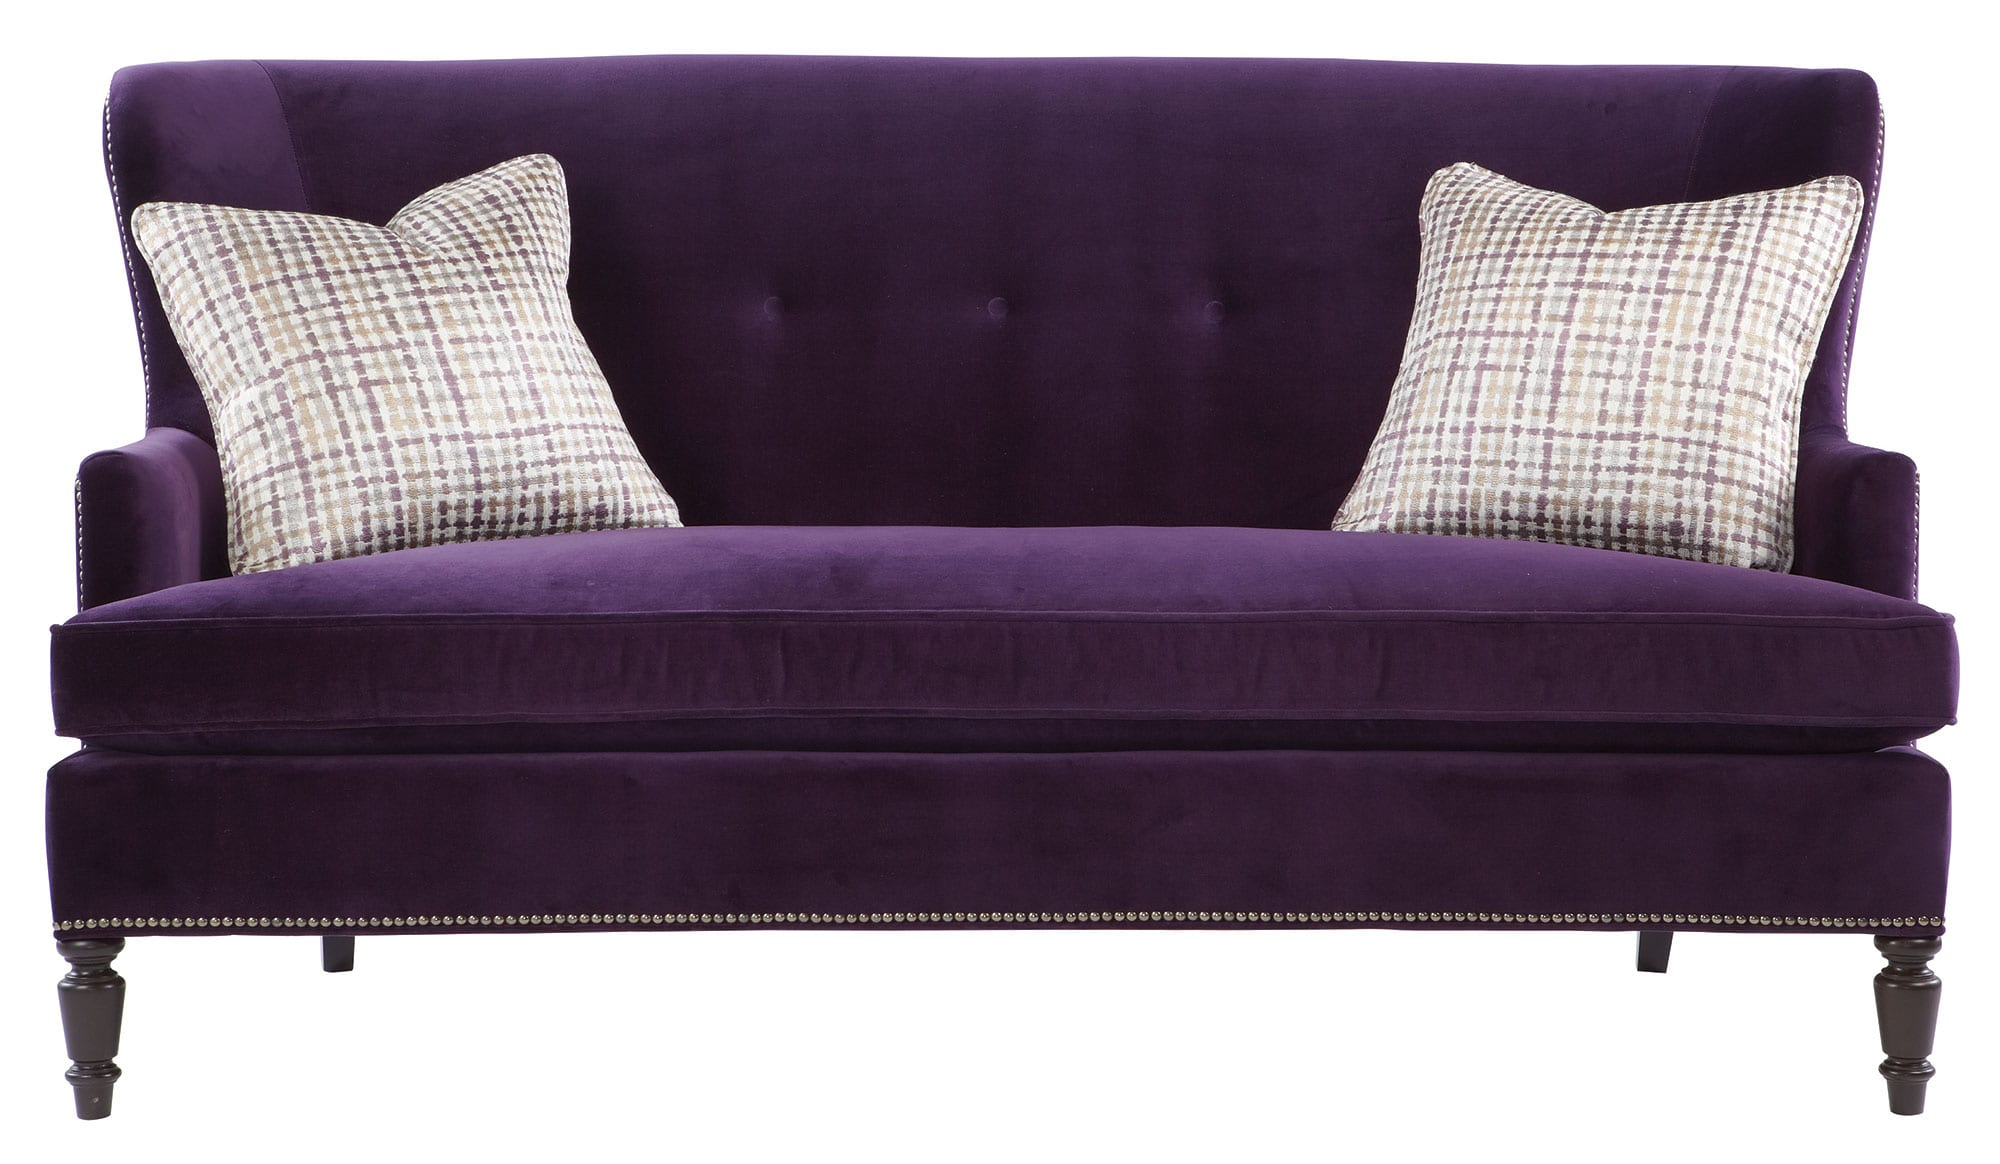 purple-couch.jpg